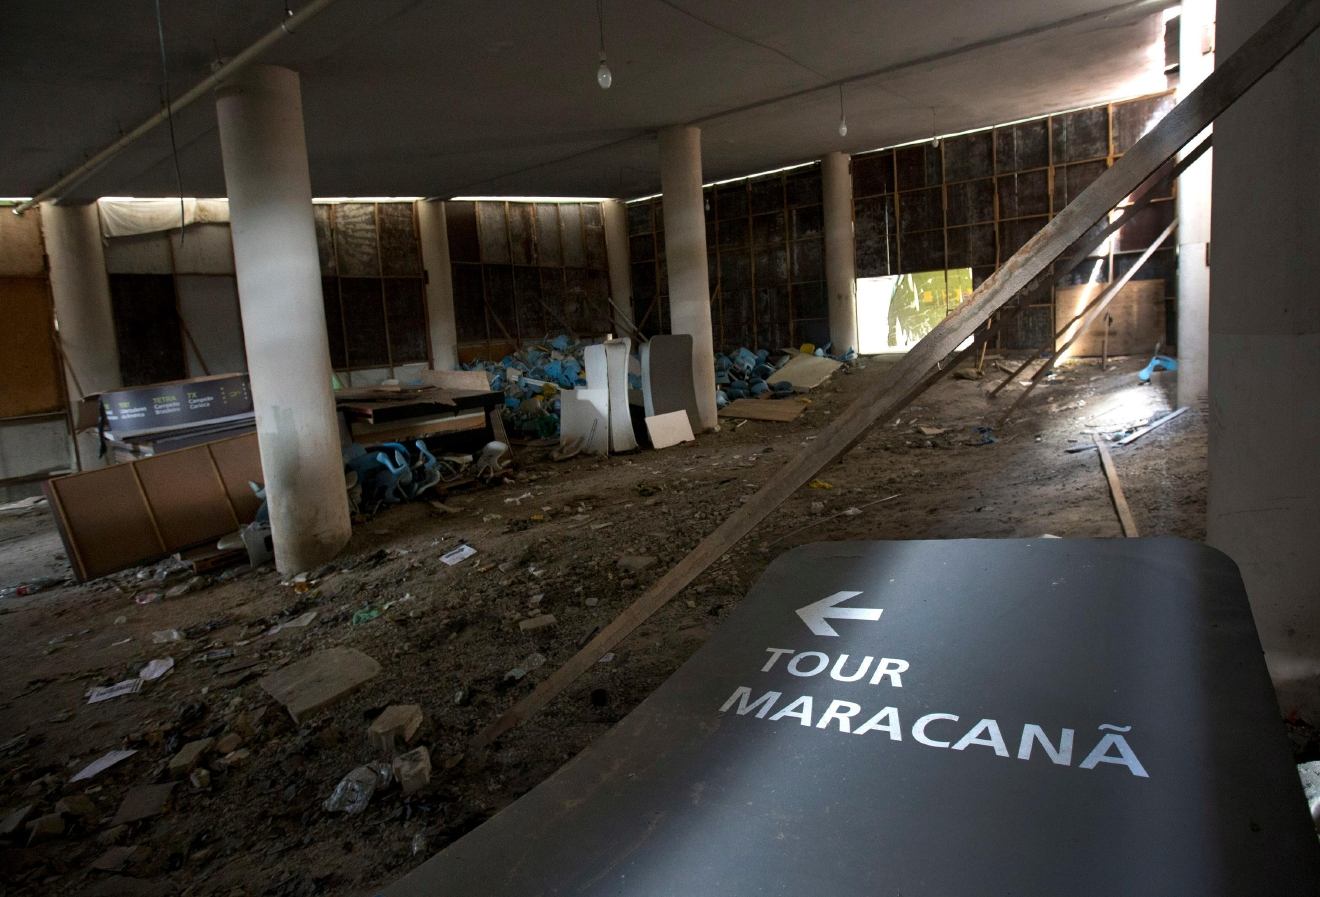 This Feb. 2, 2017 photo shows the inside of Maracana stadium in Rio de Janeiro, Brazil. The stadium was renovated for the 2014 World Cup at a cost of about $500 million, and largely abandoned after the Olympics and Paralympics, then hit by vandals who ripped out thousands of seats and stole televisions. (AP Photo/Silvia Izquierdo)